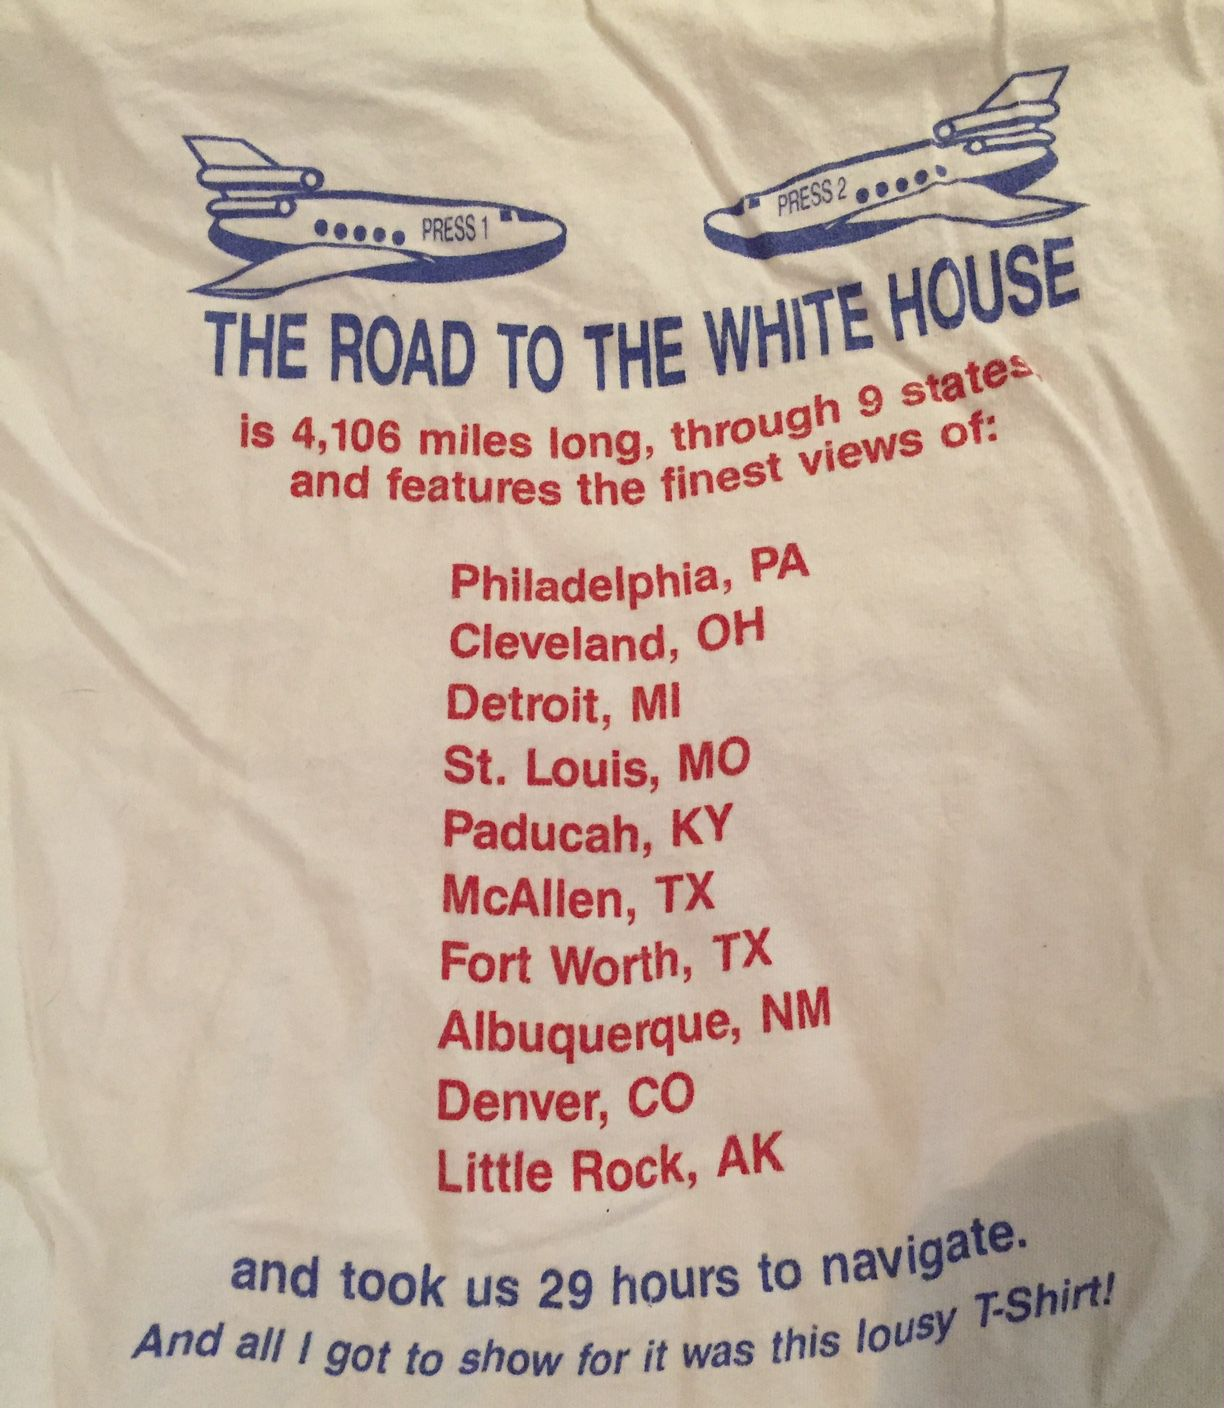 The back of the t-shirt shows the route the Clinton-Gore campaign took during its final 48 hours.